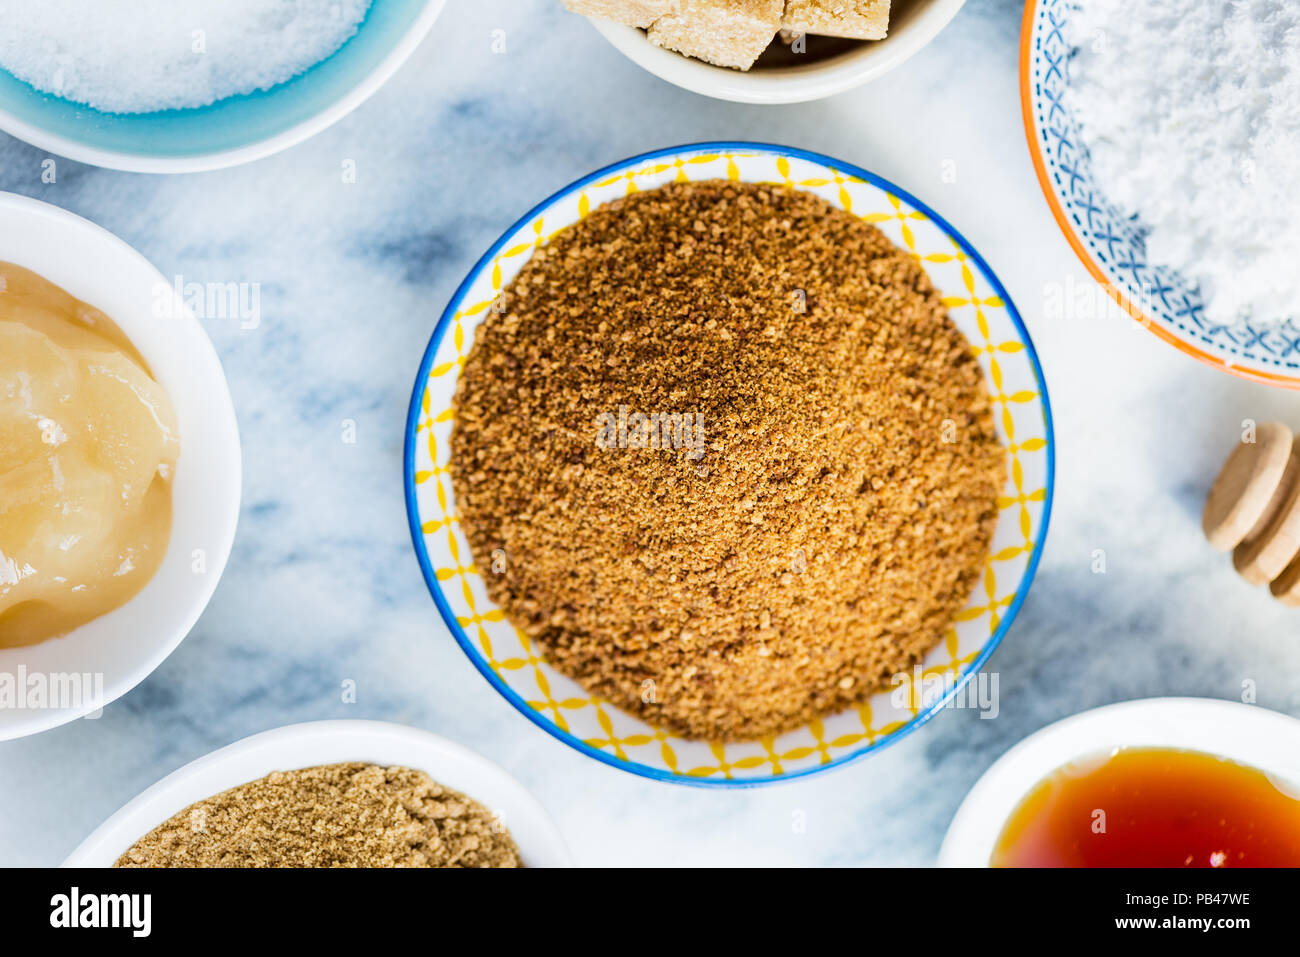 difference between caster sugar and golden caster sugar